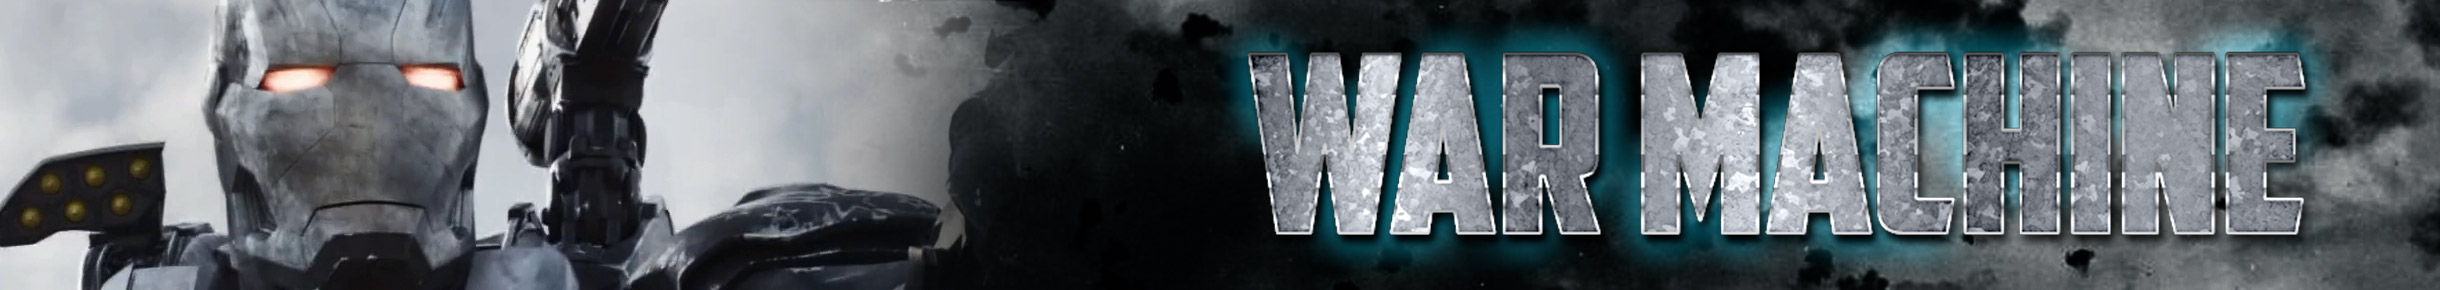 War Machine Merchandise Banner